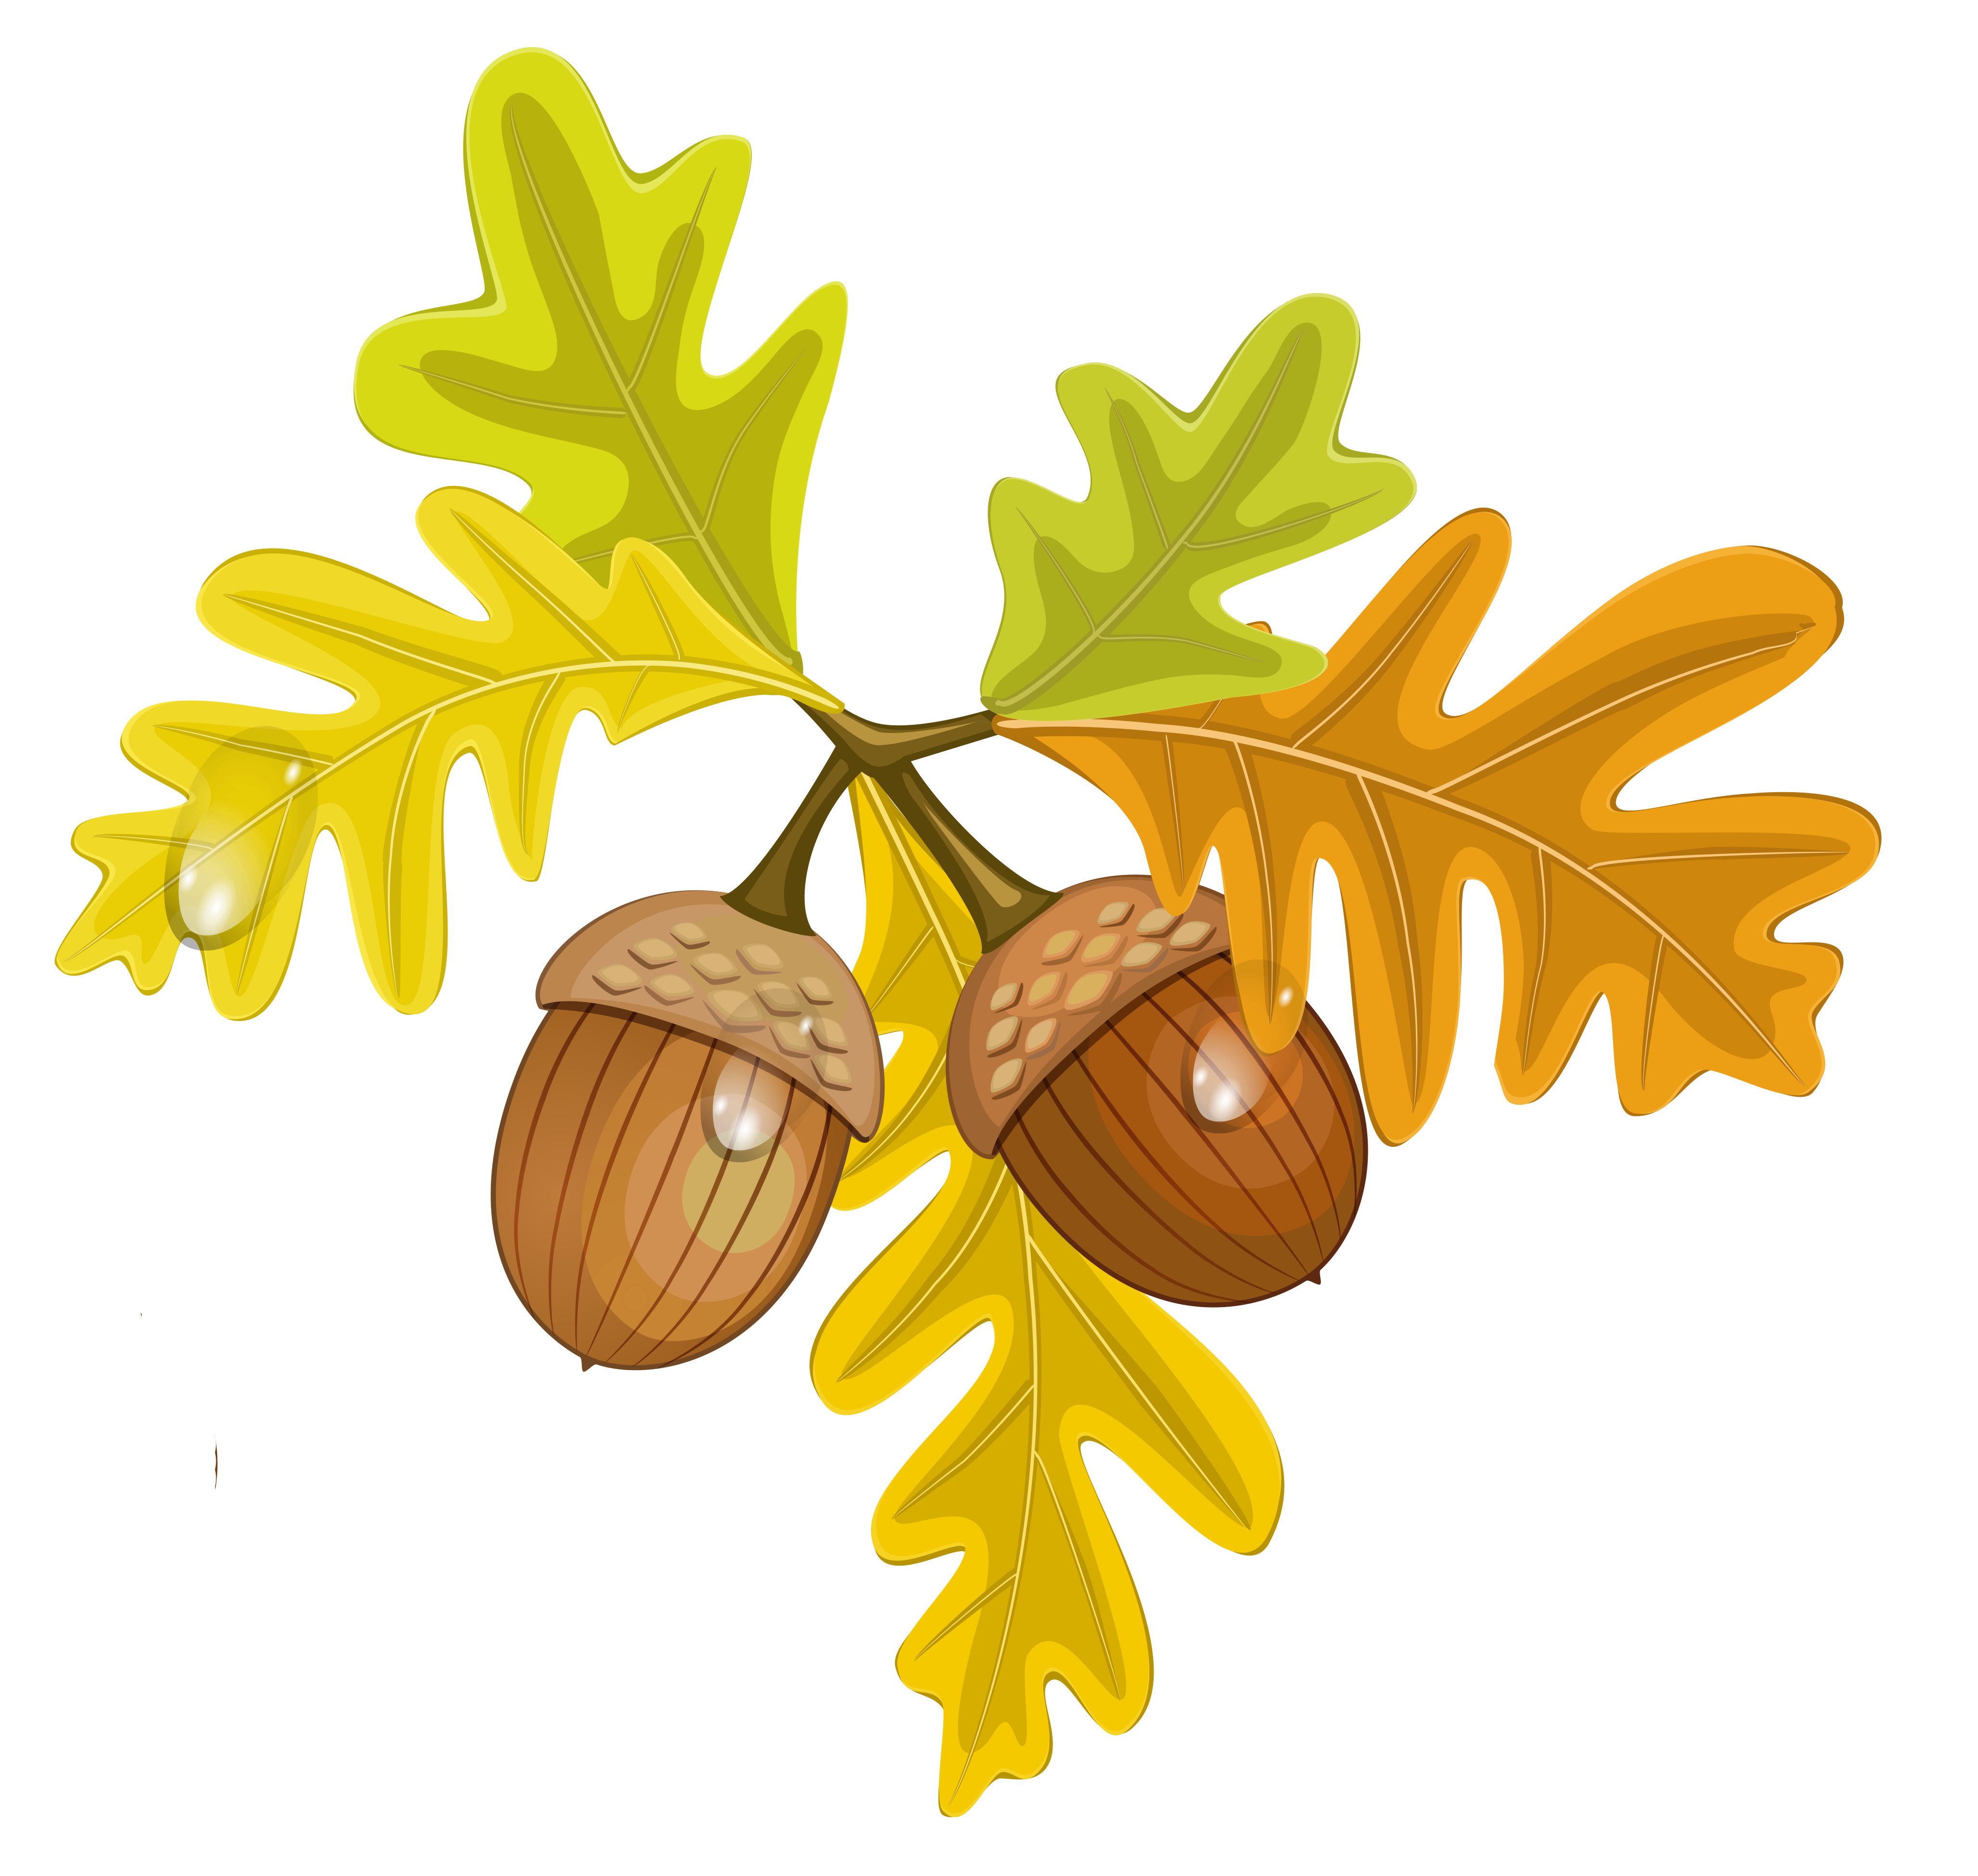 free fall leaf clipart free download best free fall leaf clipart rh clipartmag com